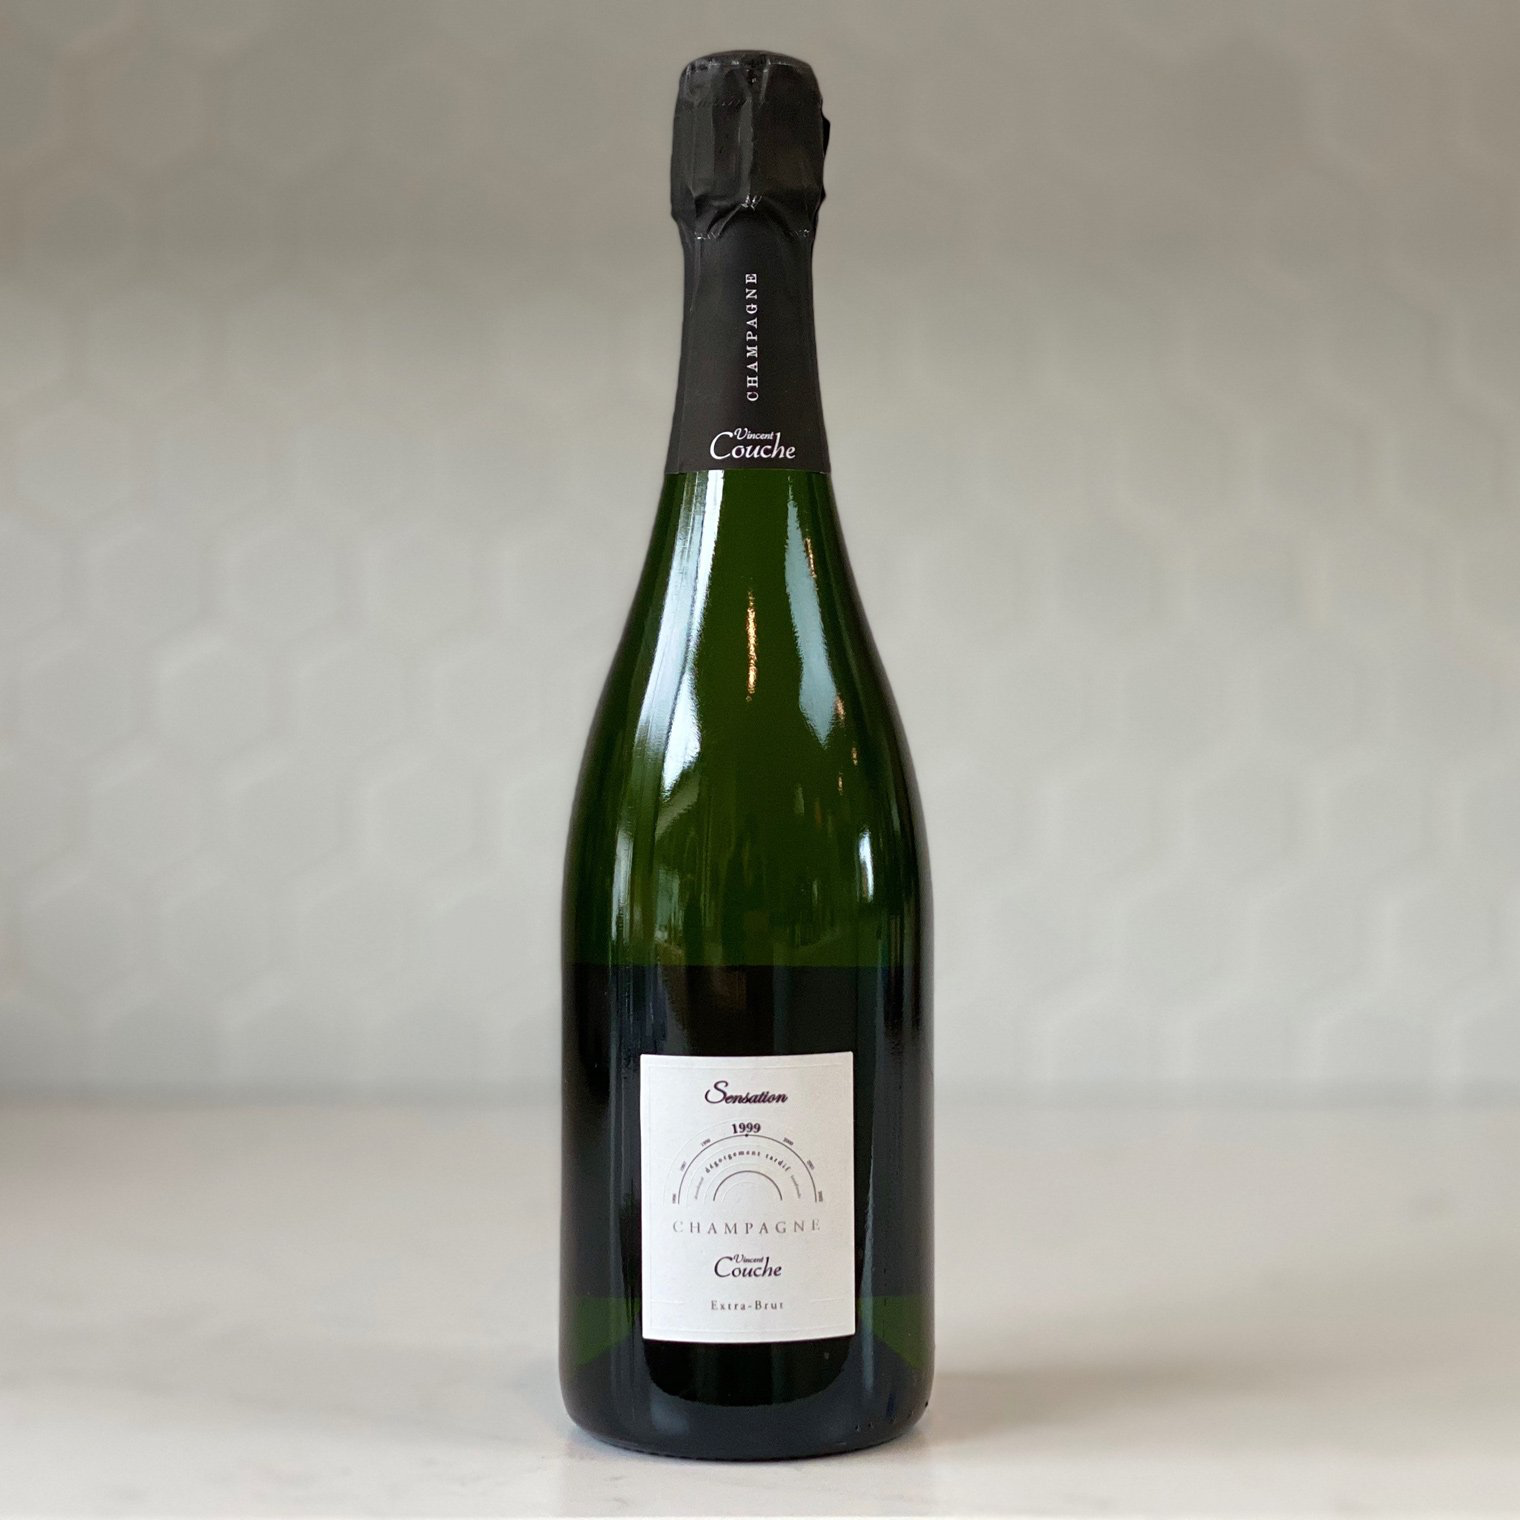 VINCENT COUCHE sensation extra brut 1999 mathusalem 6l